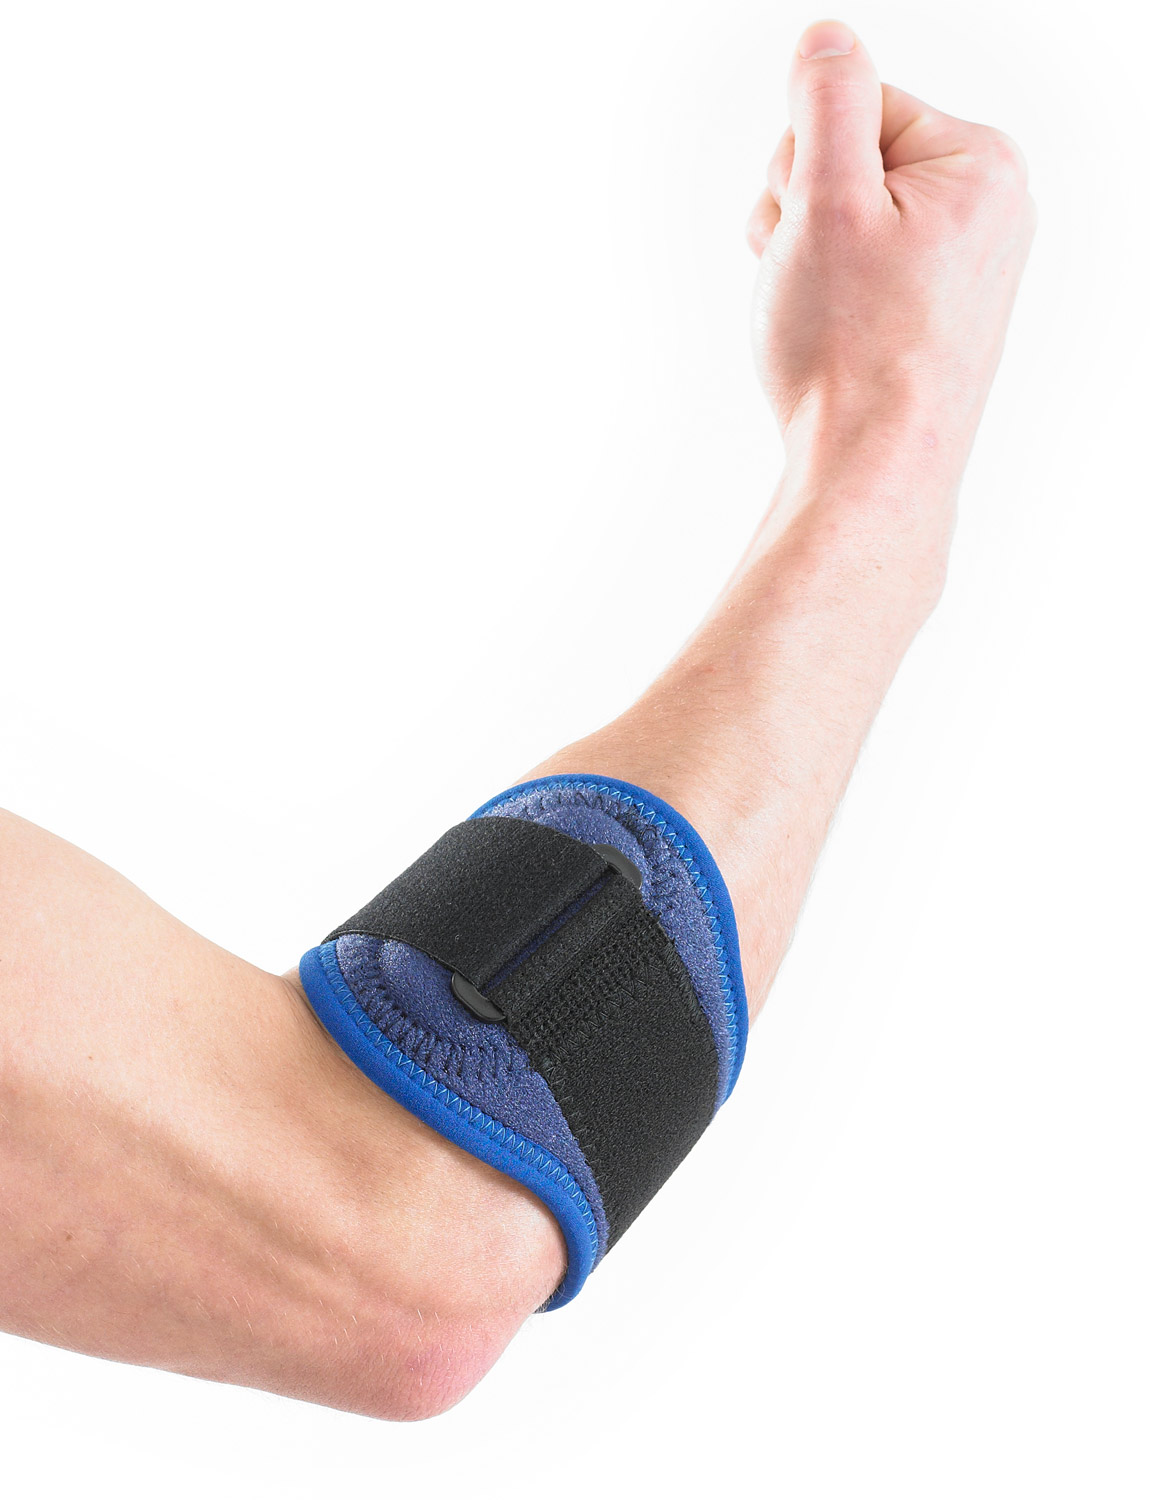 883 - TENNIS/GOLF ELBOW STRAP  It works by helping dampen vibration, stress and strain at the medial and lateral elbow by helping to stabilize and cushion the flexor and extensor muscles in the forearm.